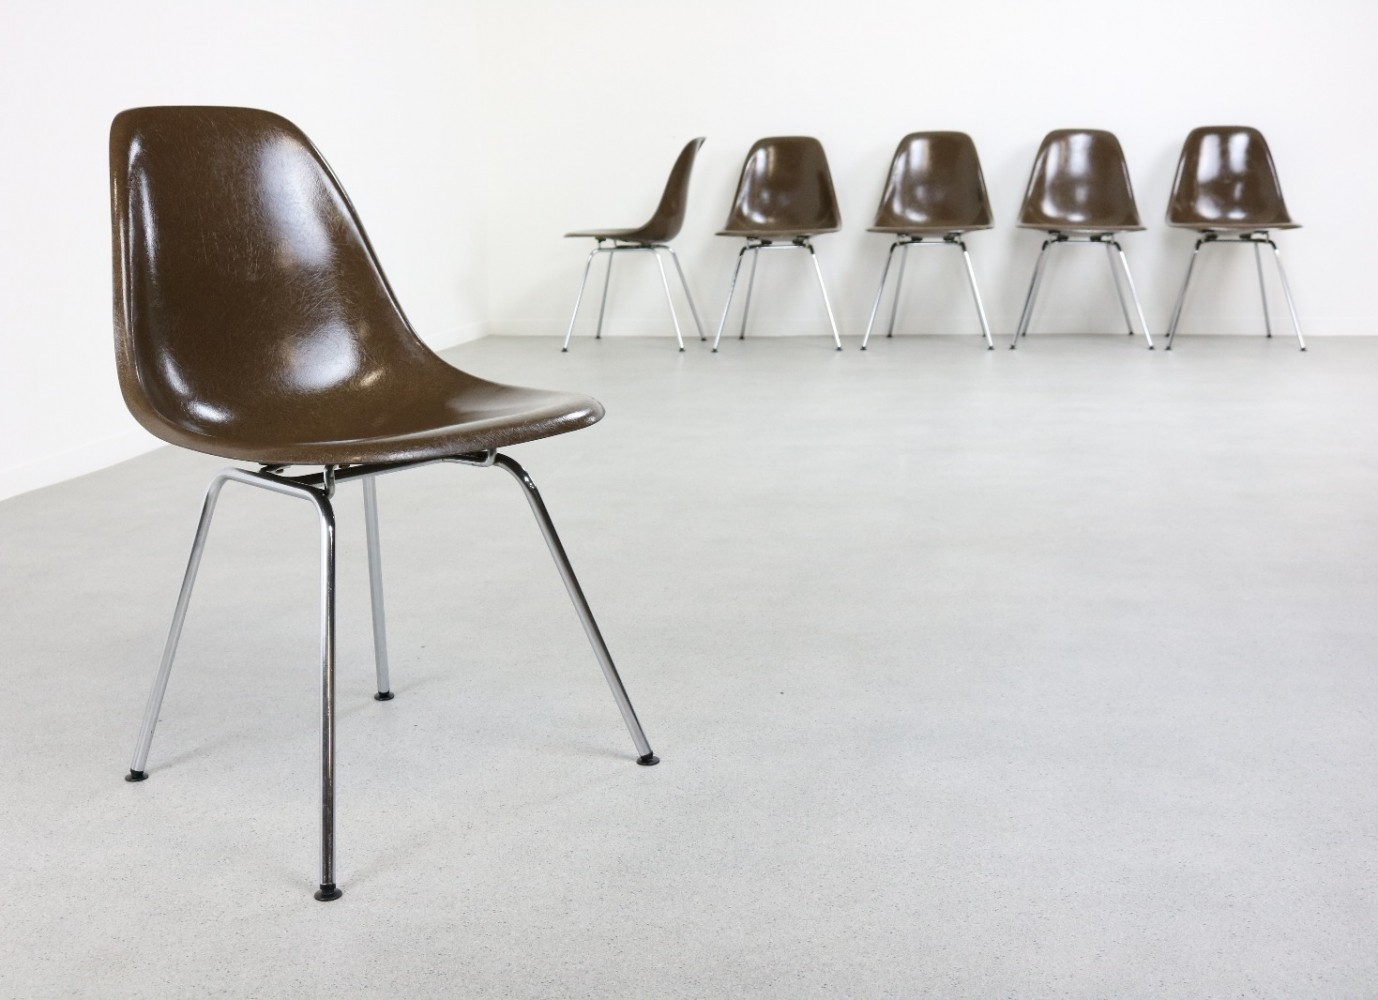 Set of 6 DSX on original H-Base dining chairs by Charles & Ray Eames for Herman Miller, 1950s